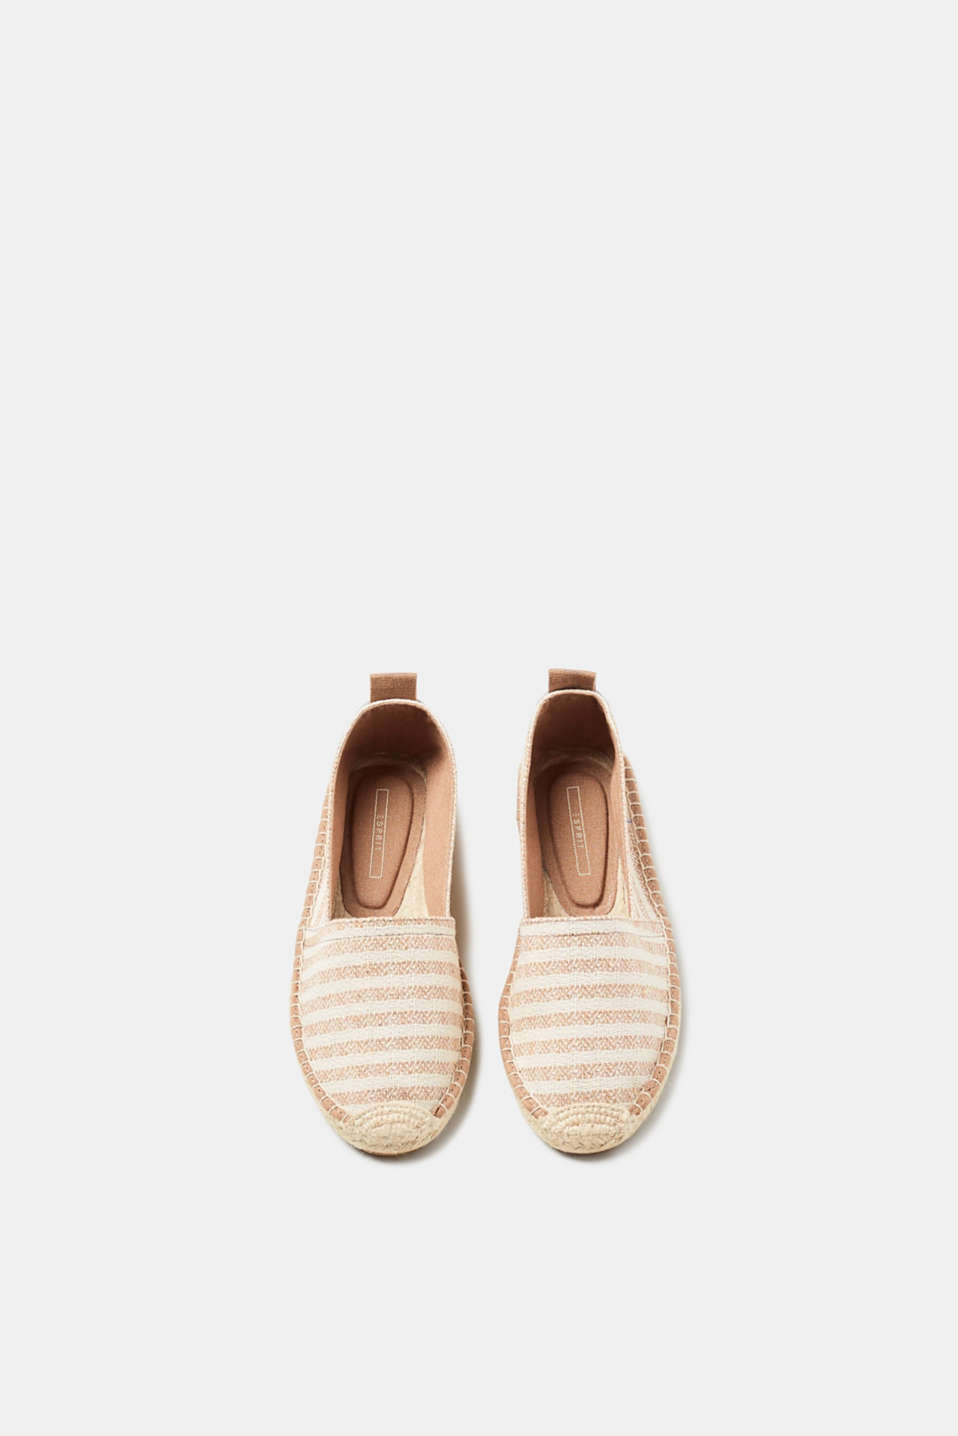 Slip-on espadrilles in a nautical look